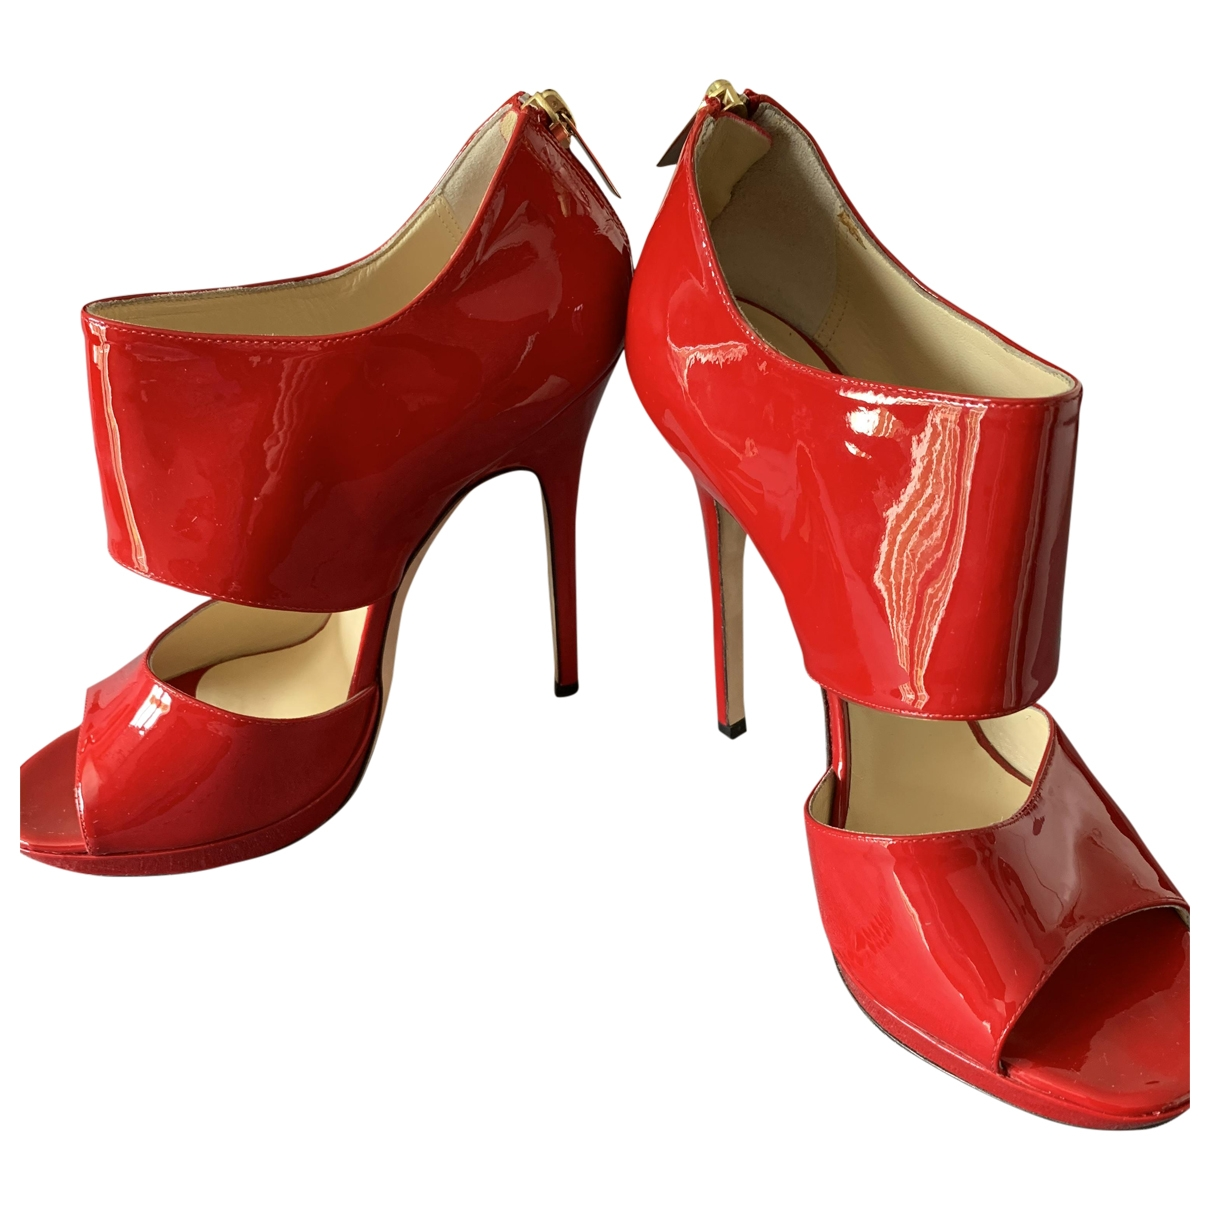 Jimmy Choo \N Red Patent leather Heels for Women 39.5 EU